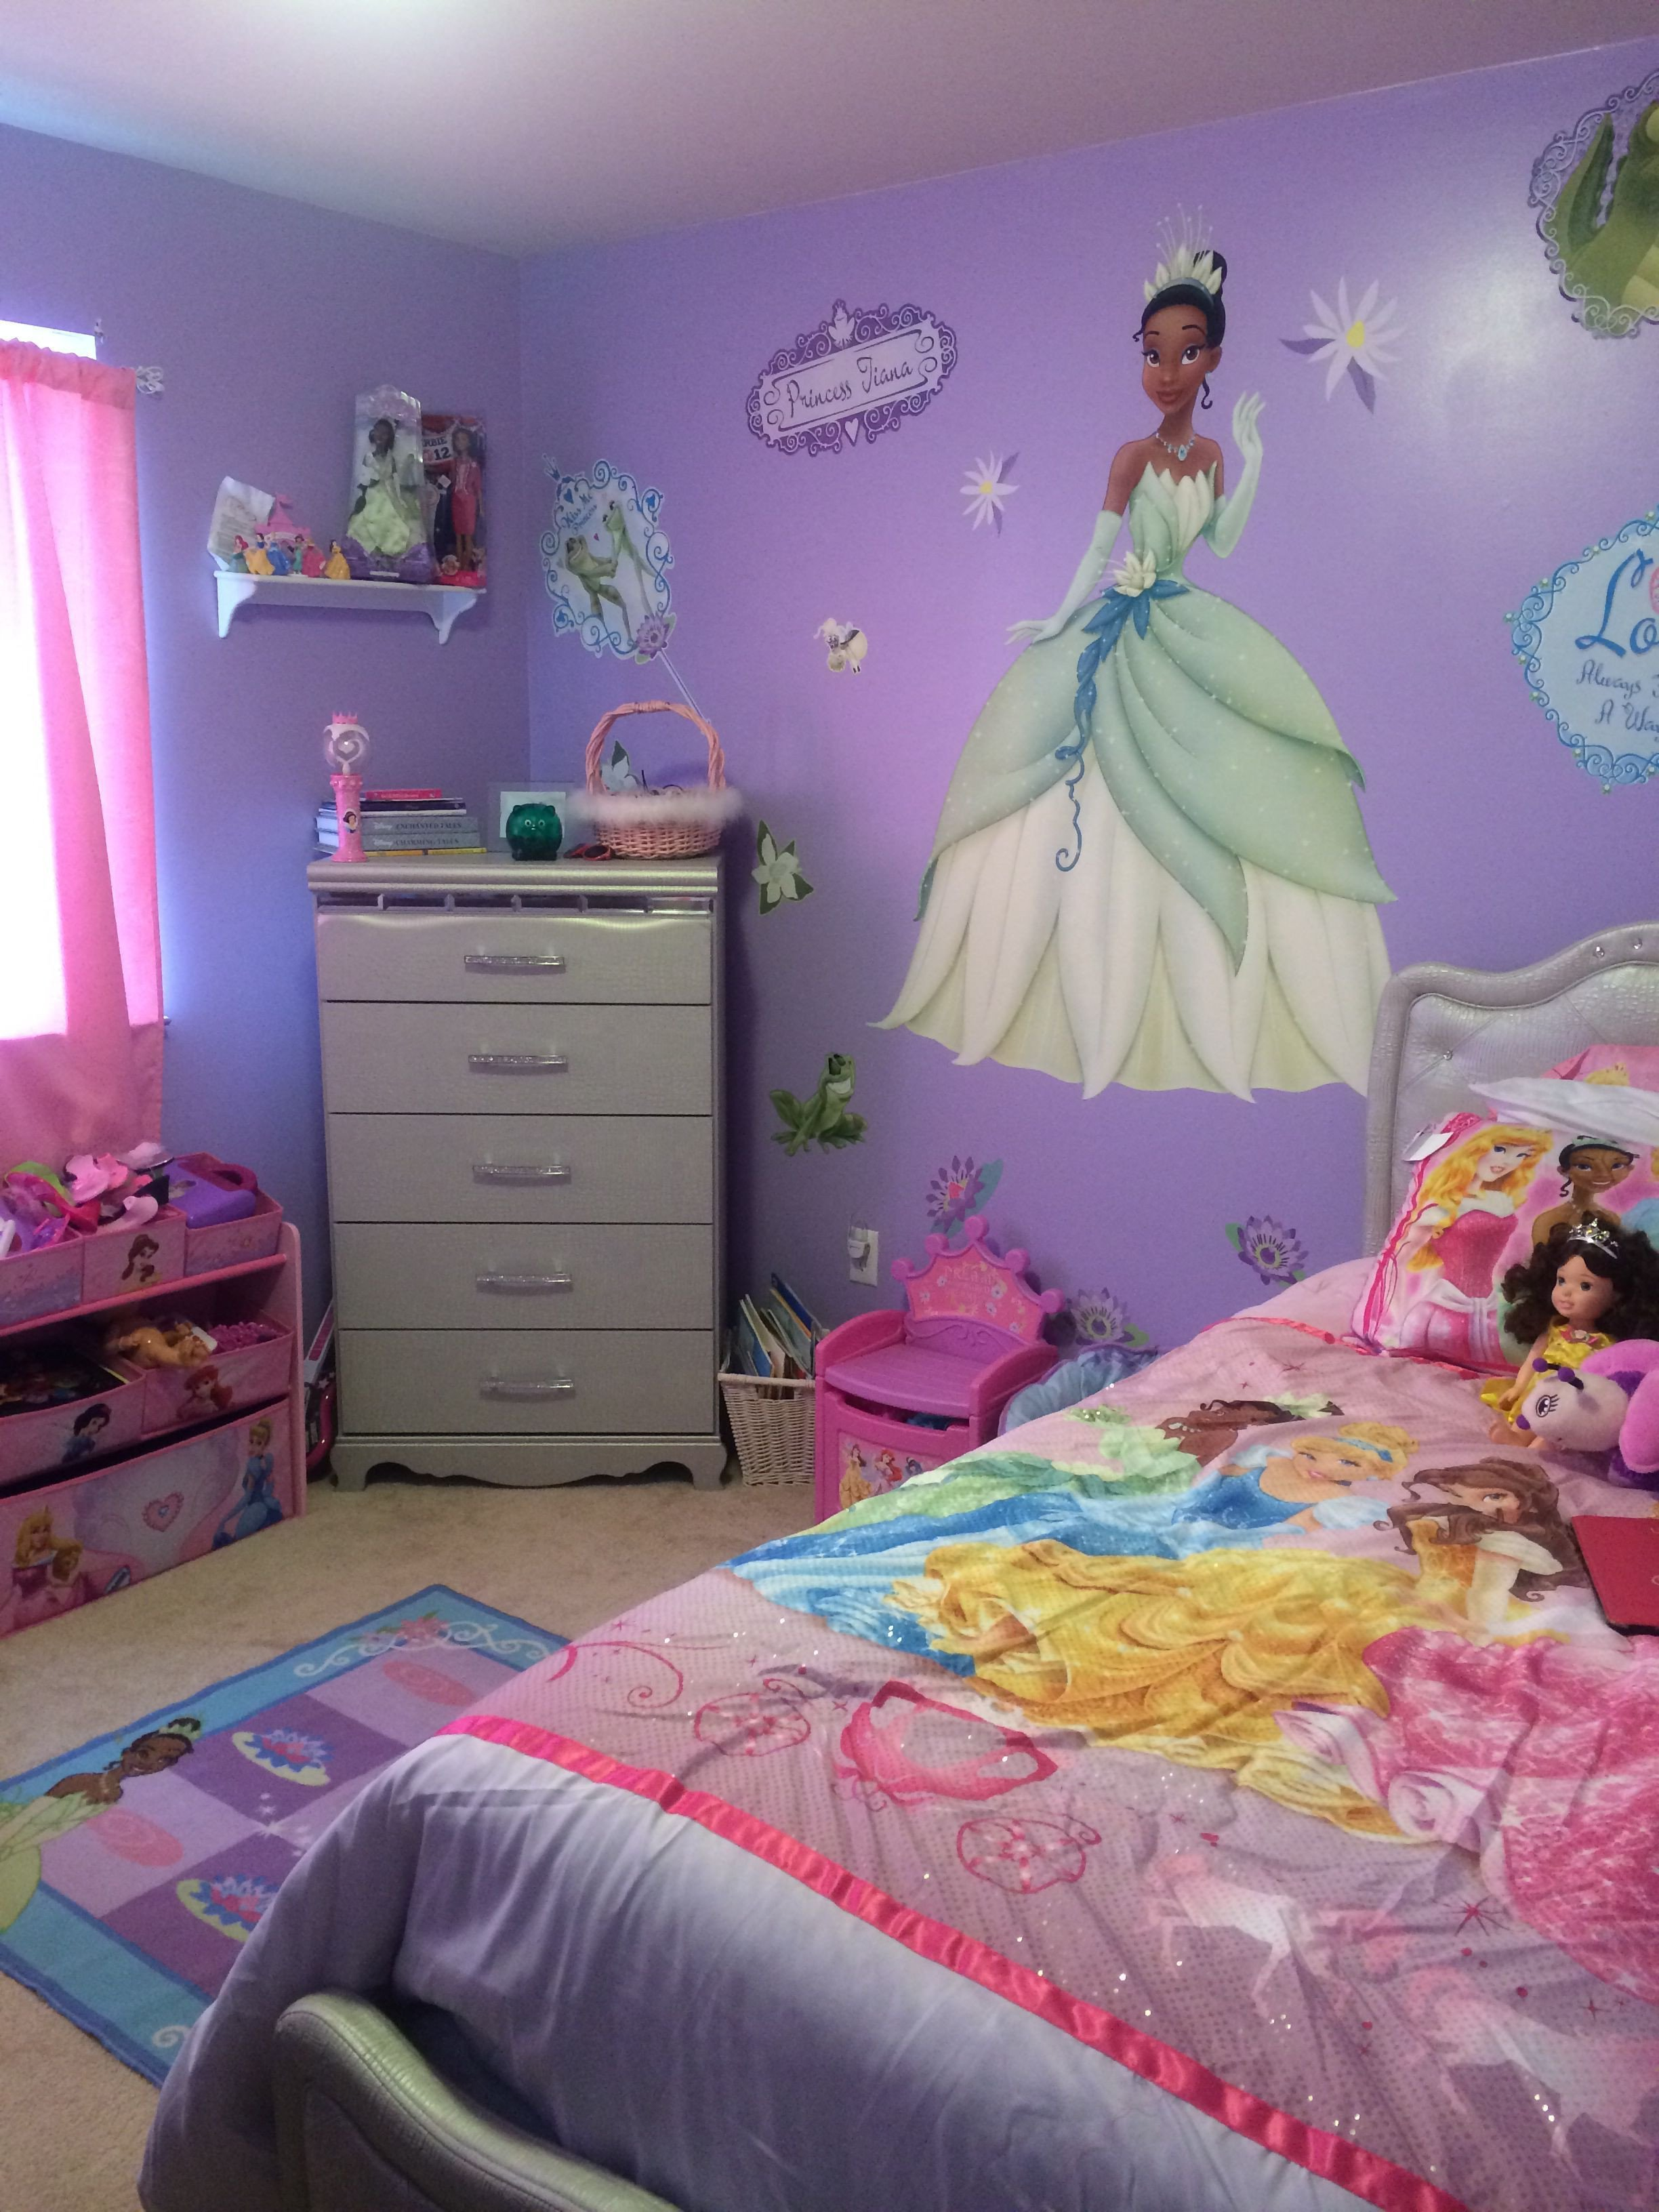 Disney Princess Bedroom Set Inspirational Disney Princess Will Never Be Boring Bring It to Your